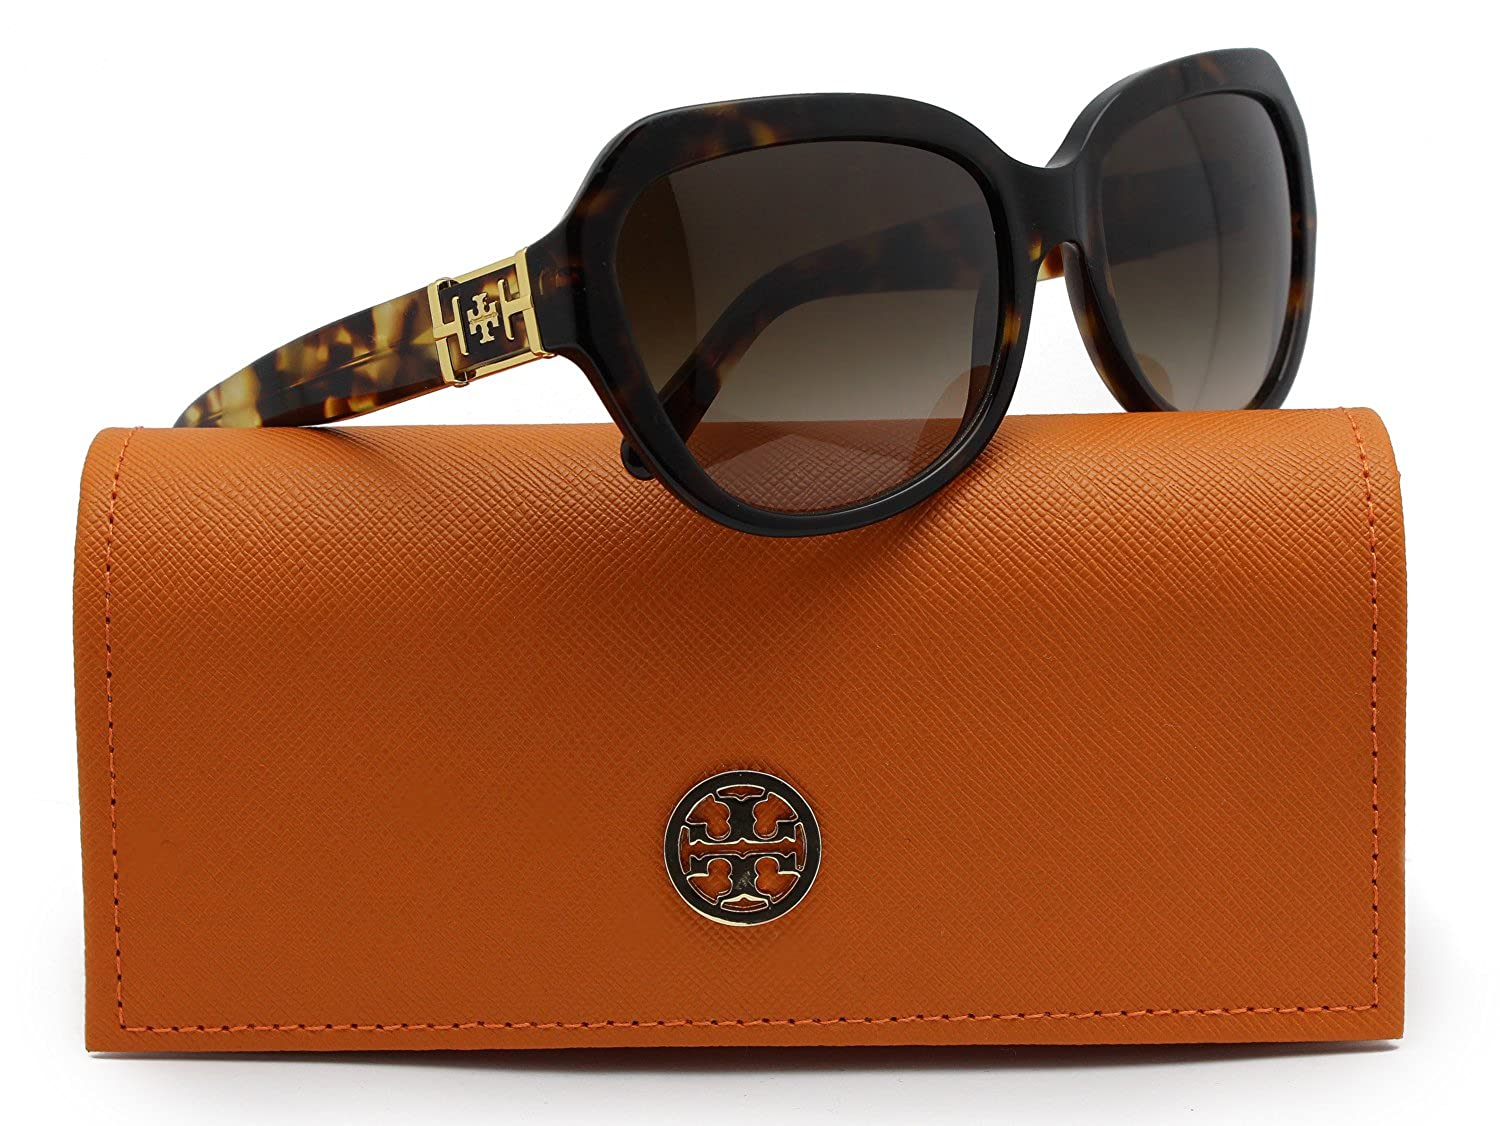 73d85476816 Amazon.com: TORY BURCH TY7071 Sunglasses Spotted Tortoise w/Brown Gradient  (1331/13) TY 7071 133113 58mm: Clothing